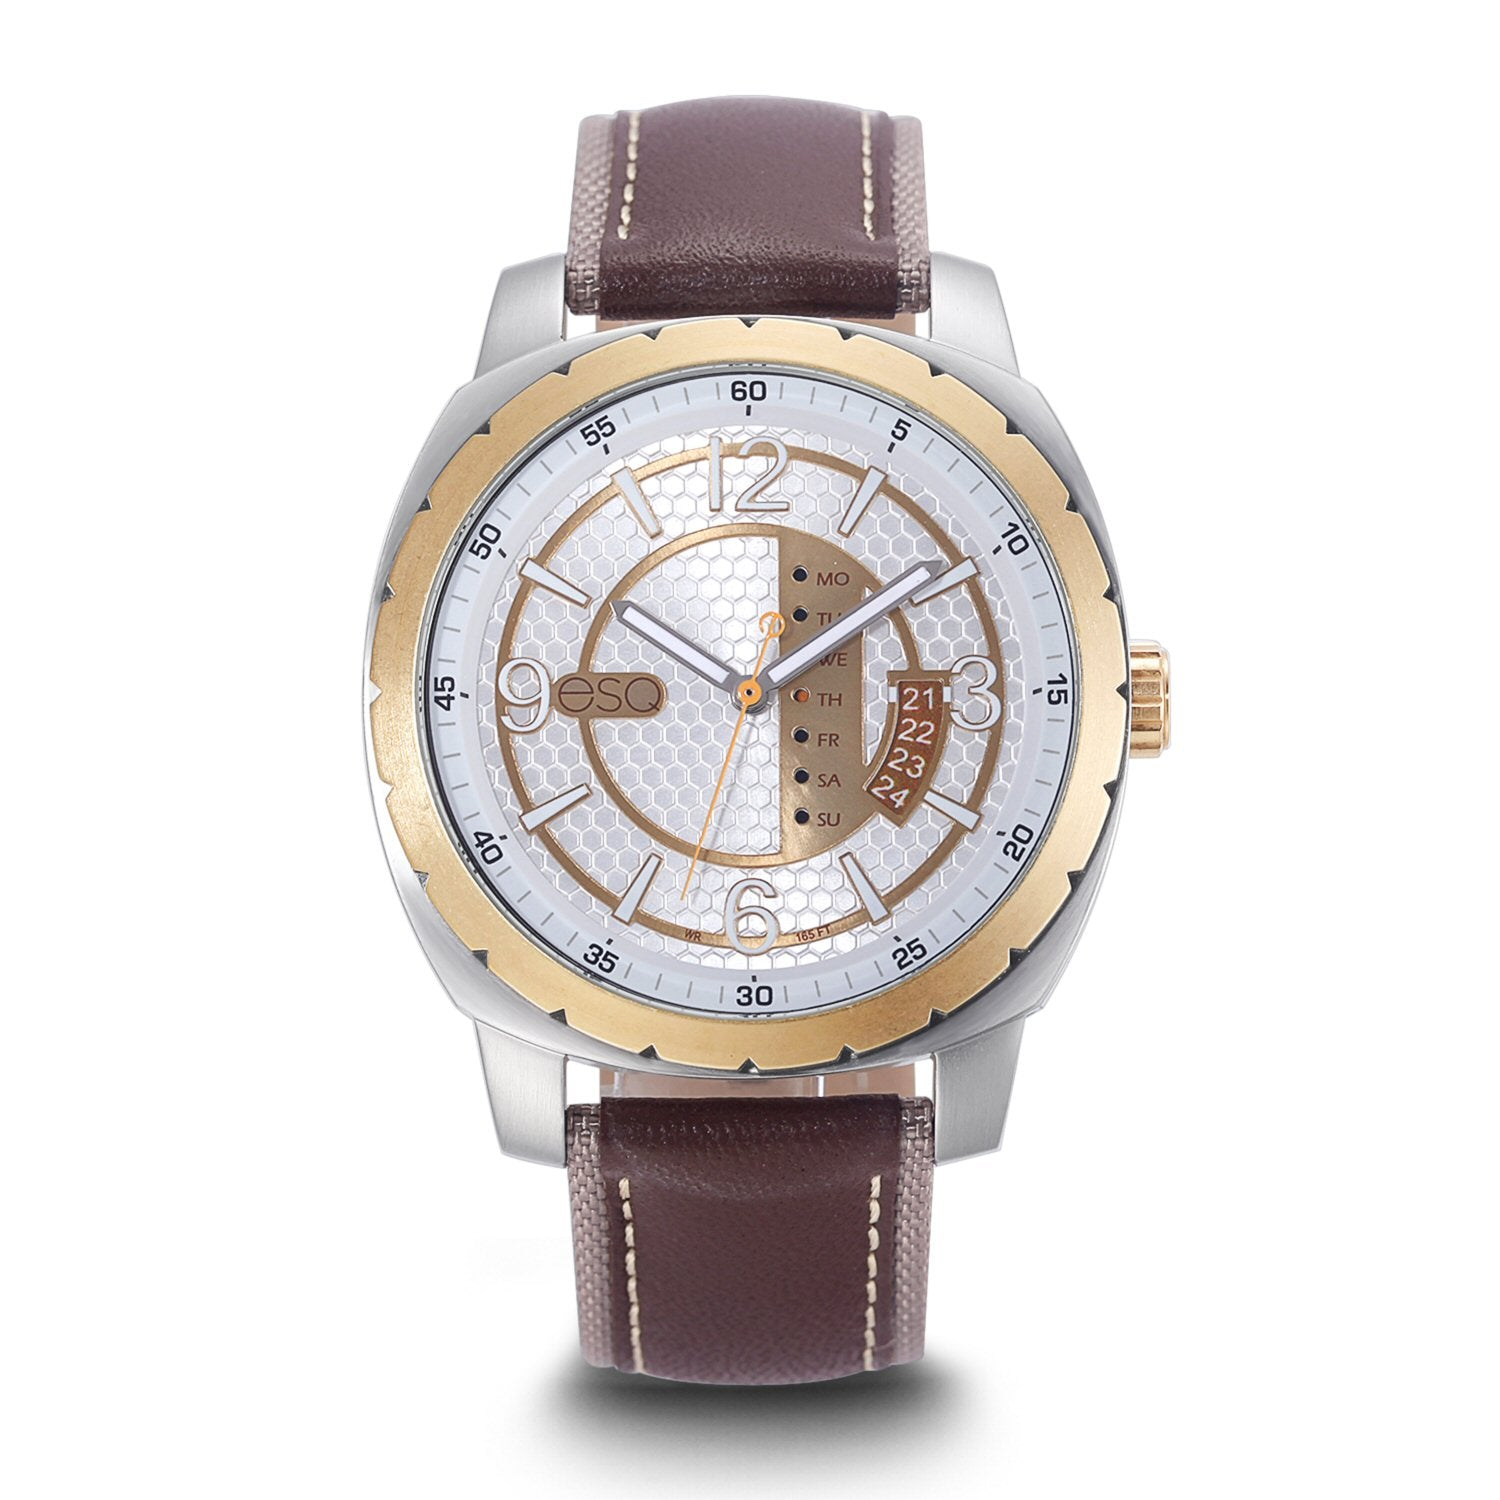 Men's ESQ0111 Stainless Steel 3-Hand Watch with Textured Silver and Gold Dial, Gold IP Bezel, Day/Date Windows and Genuine Leather Strap